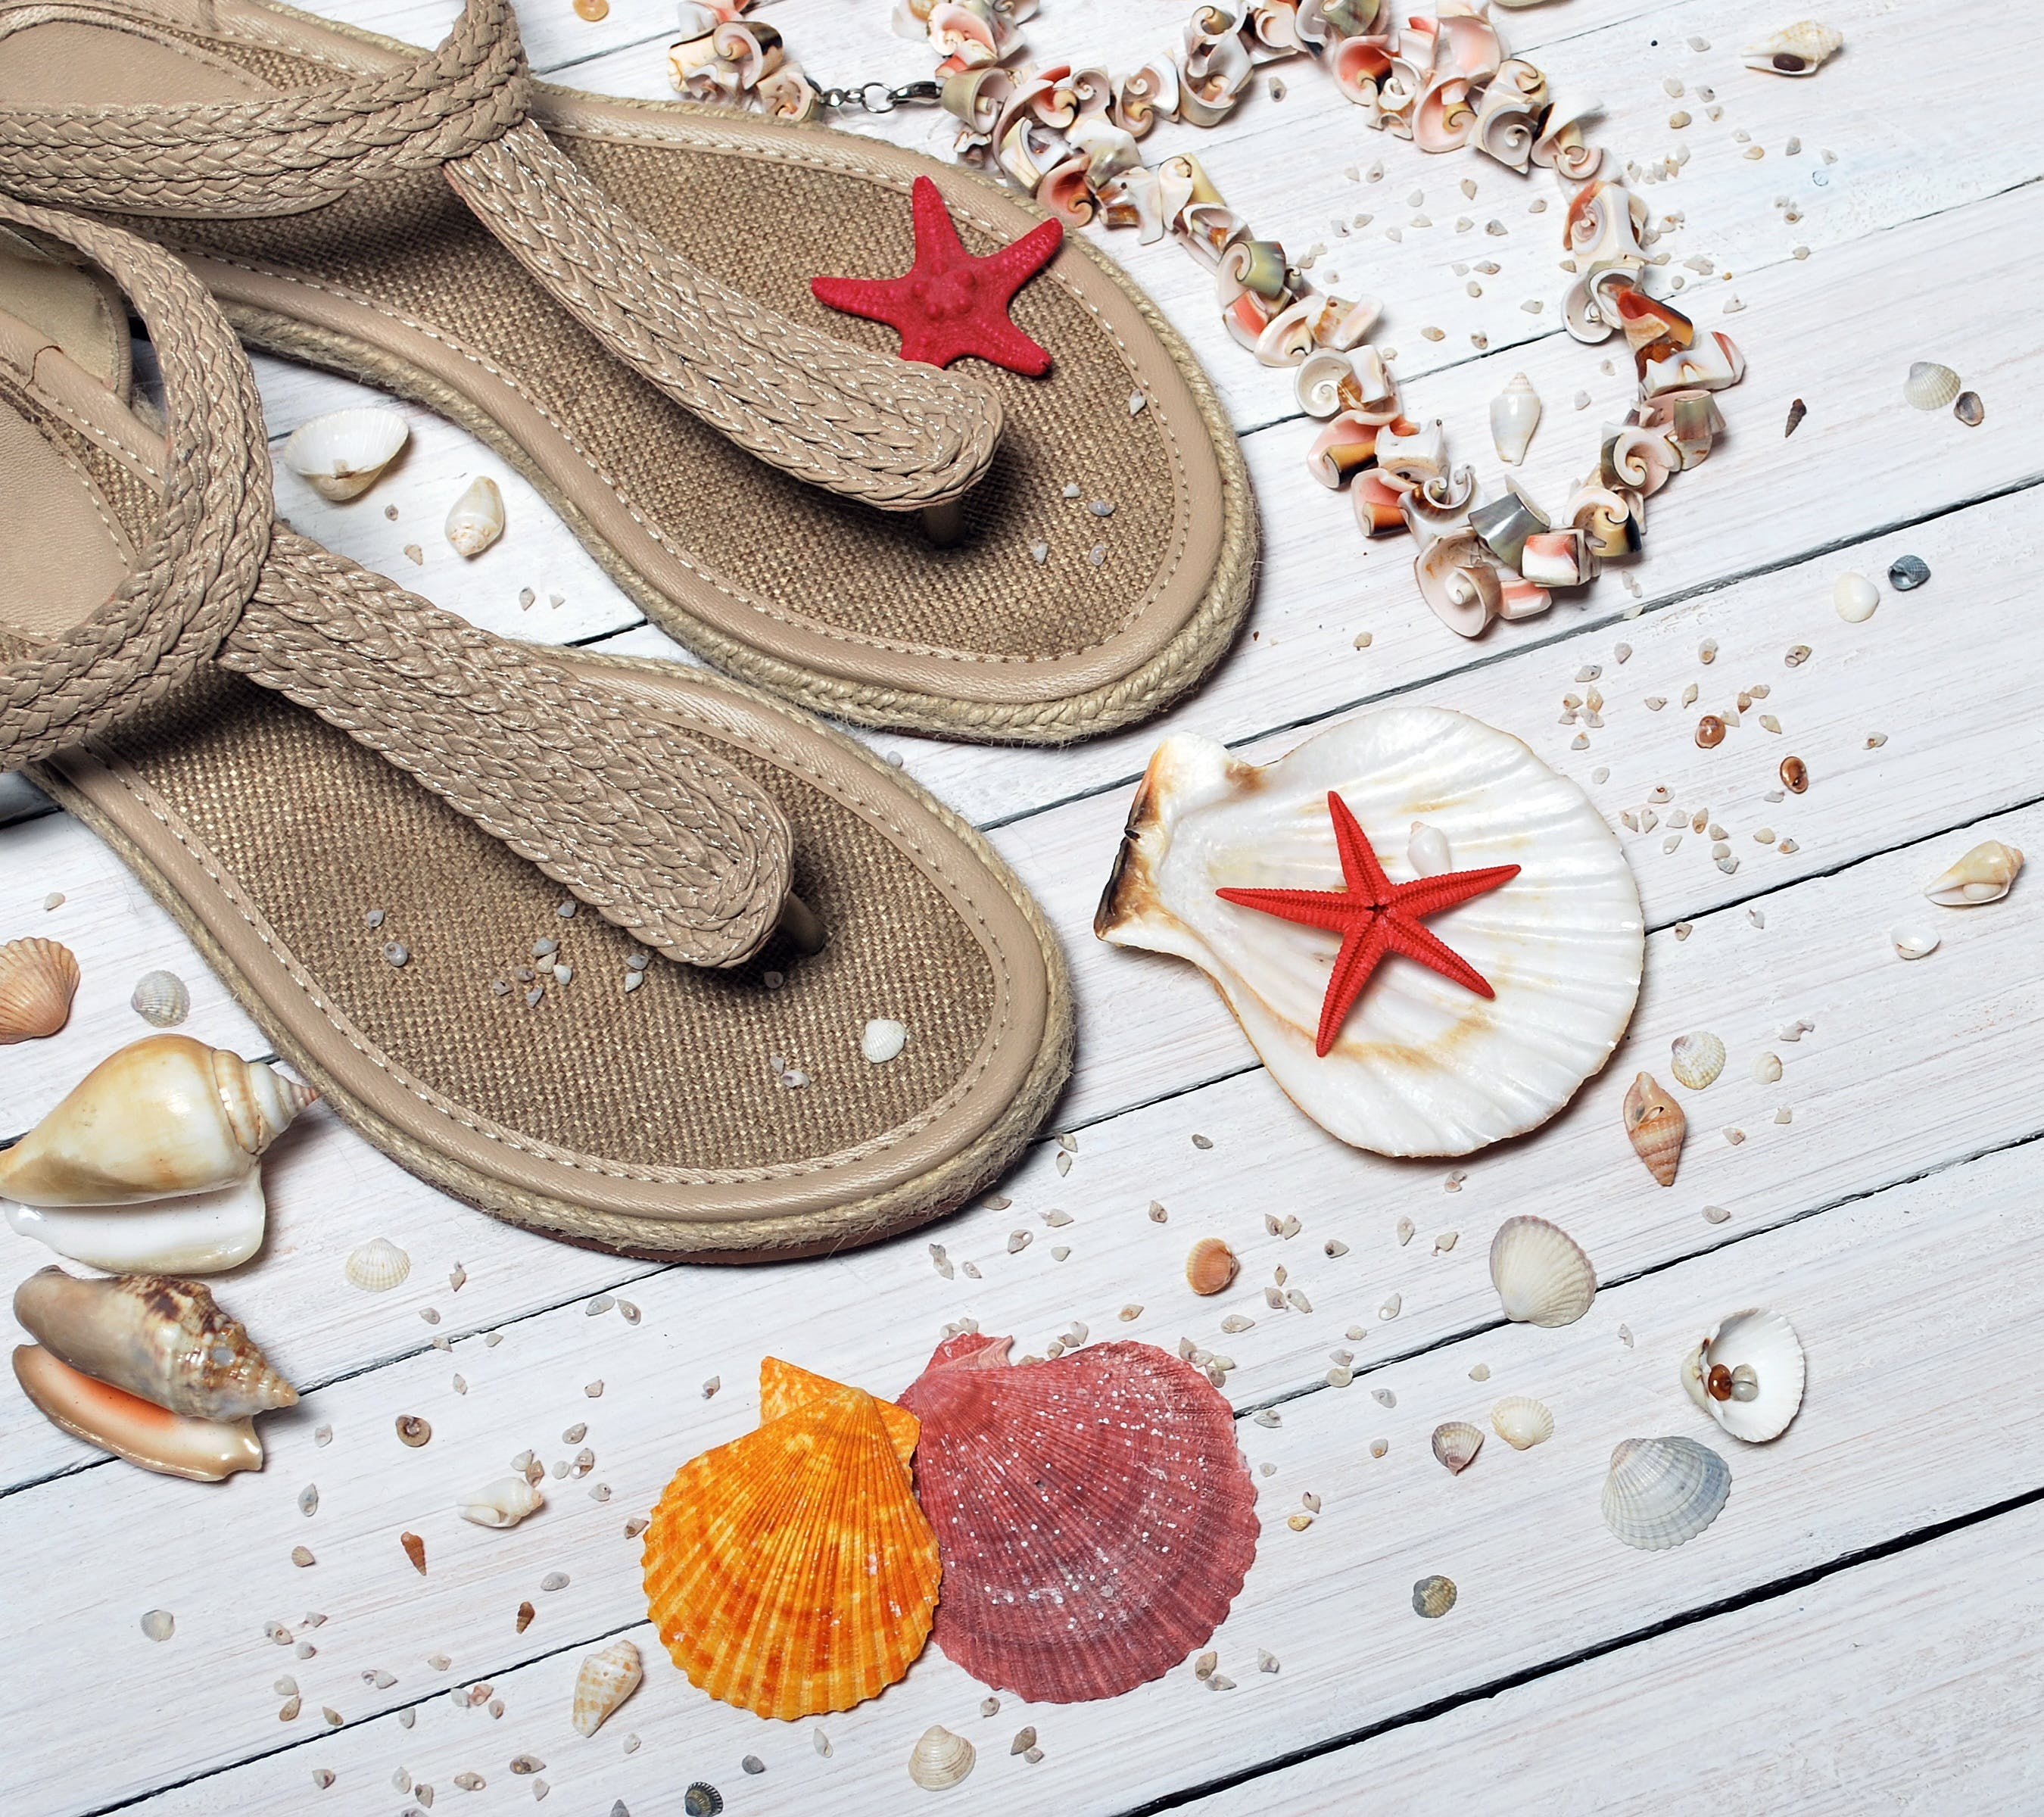 Beige Thong Flat Sandals Placed Beside Seashells